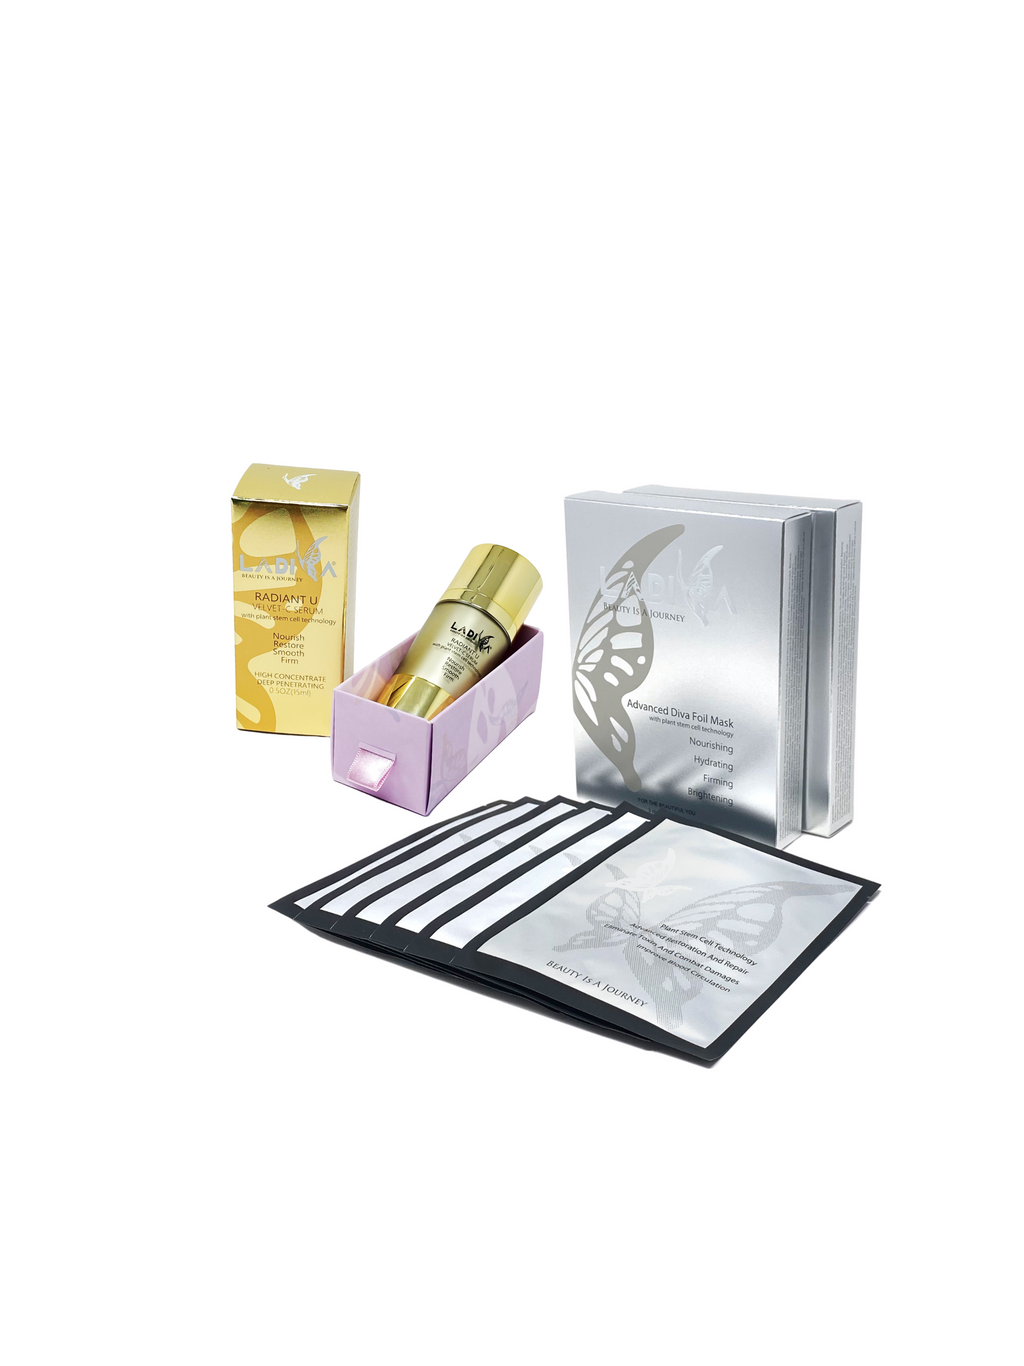 LaDiva Special Skincare Pack: Radiant U Velvet C Serum 1-Bottle & Advanced Diva Foil Mask 2-Box Pack (6 Masks)